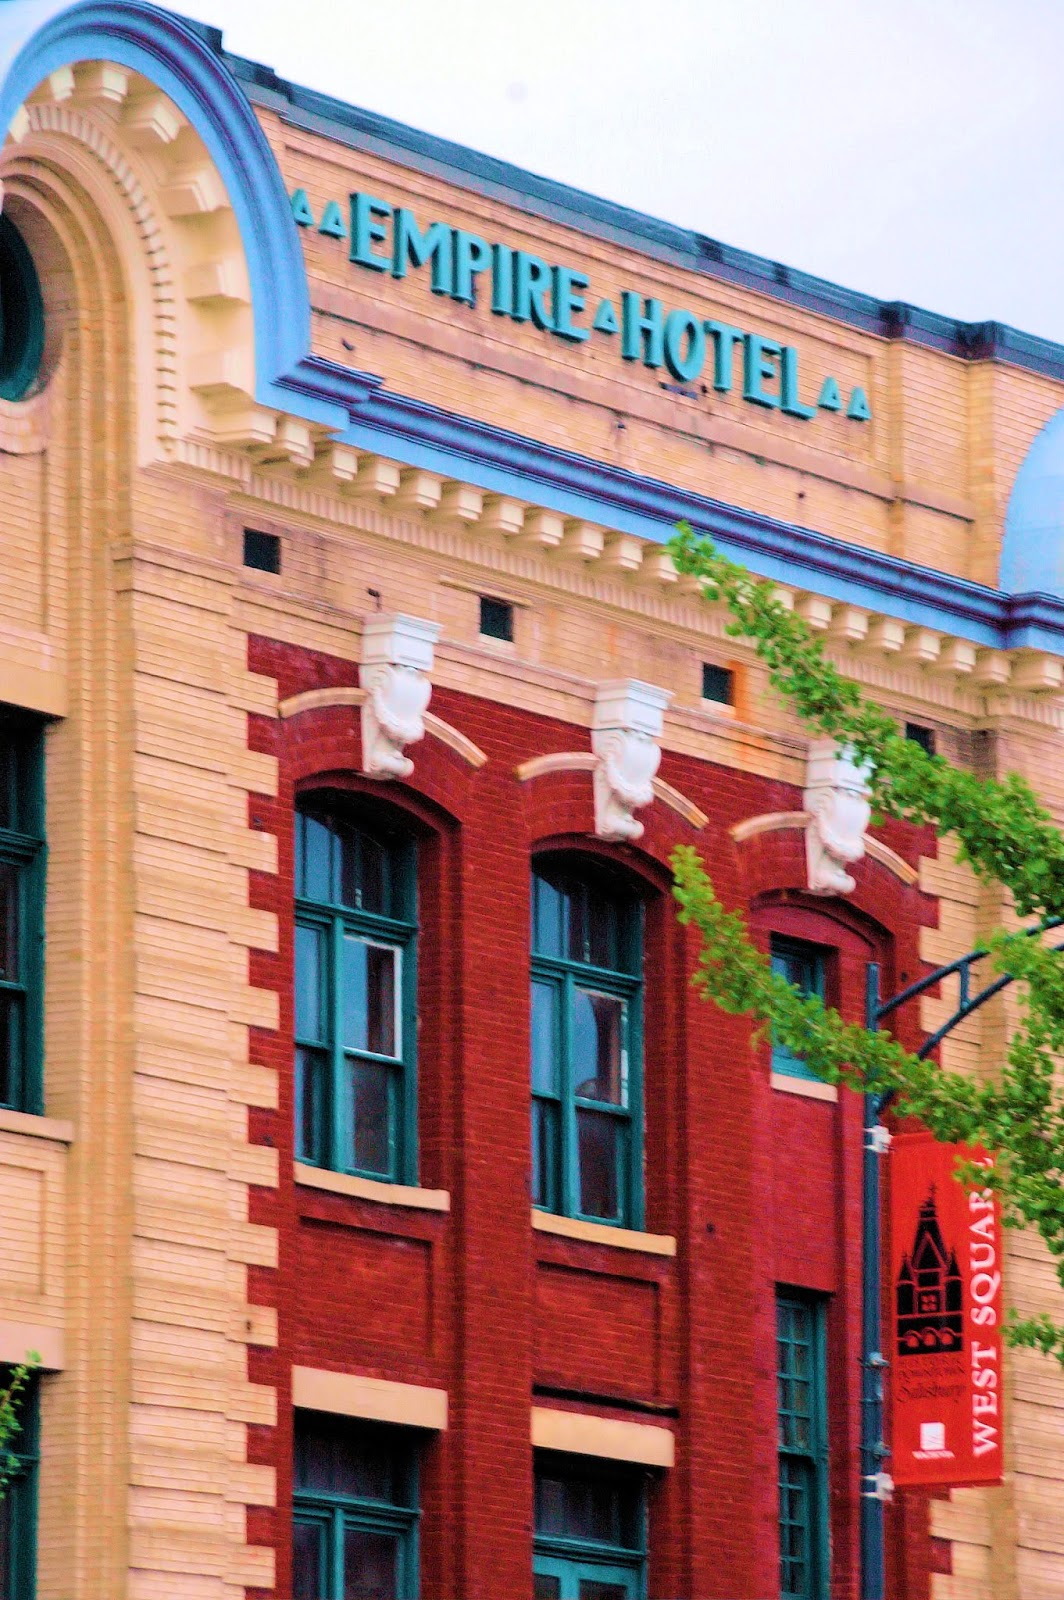 That Could Use A Great Downtown Location Put Your Business In The Historic Highly Visible C 1855 Empire Hotel On S Main Street Salisbury Nc